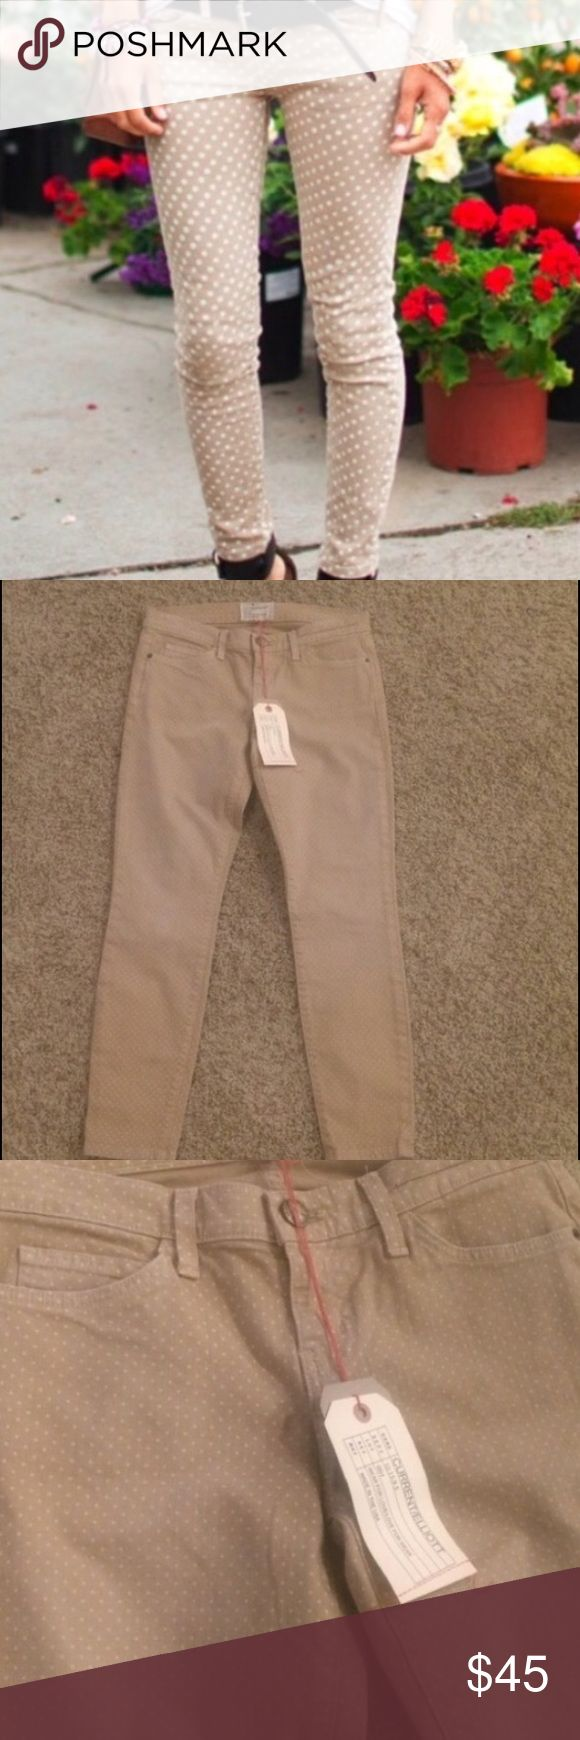 Current Elliot polkadot stilleto New with tags Anthropologie Jeans